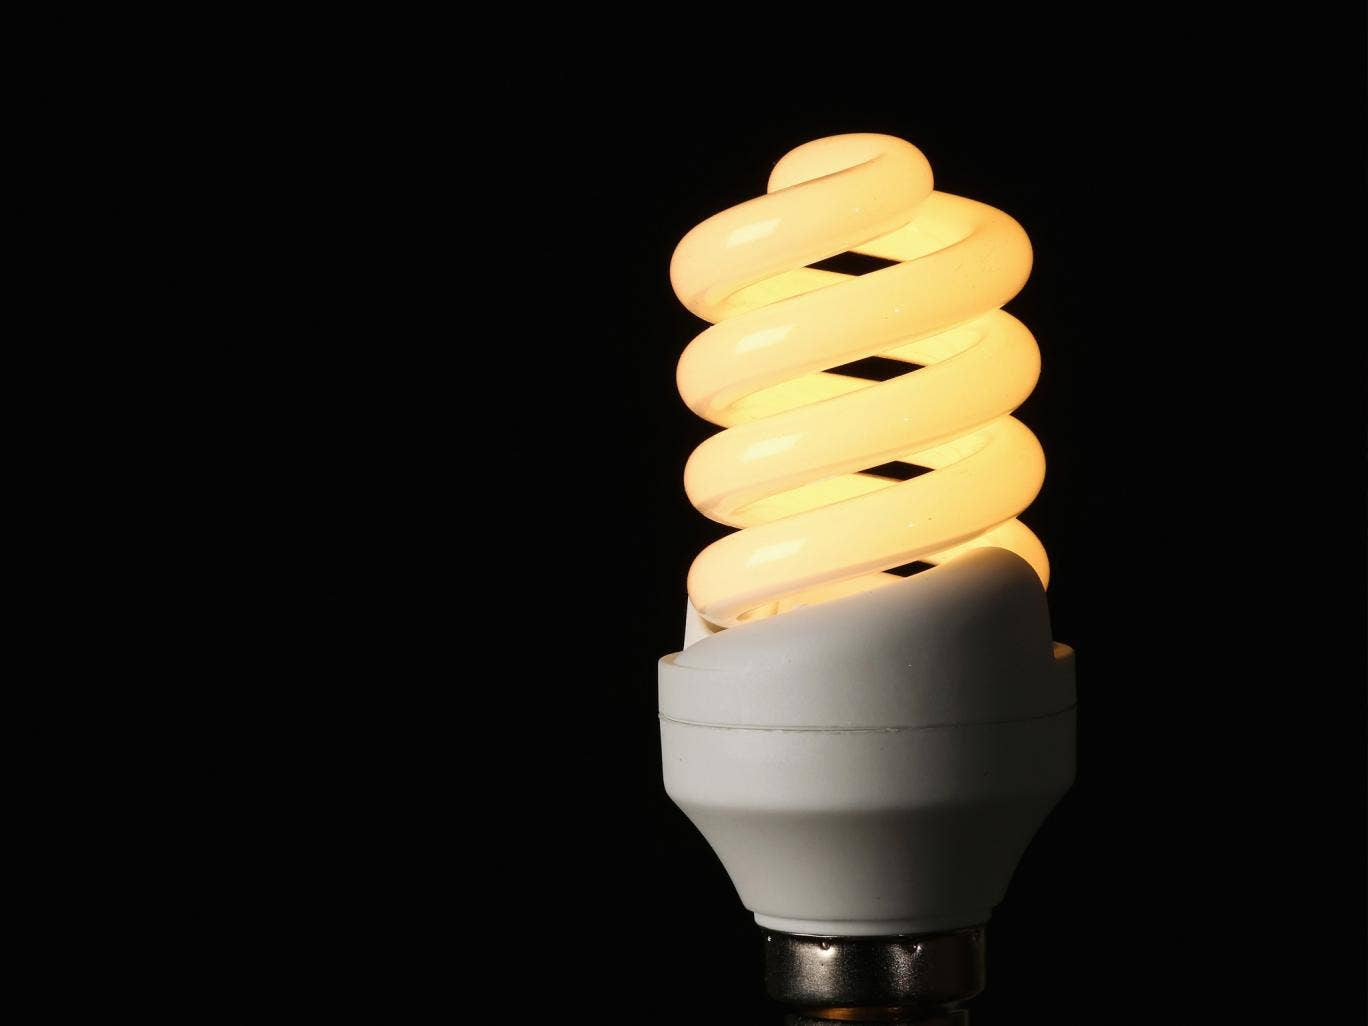 Scientists Have Discovered Fundamental Property Of Light 150 Years Tail Lamp Bulb Circuit Board W Bulbs Left Or Right Fits 0206 Access To Artificial Triggers A Reduction In Sleep